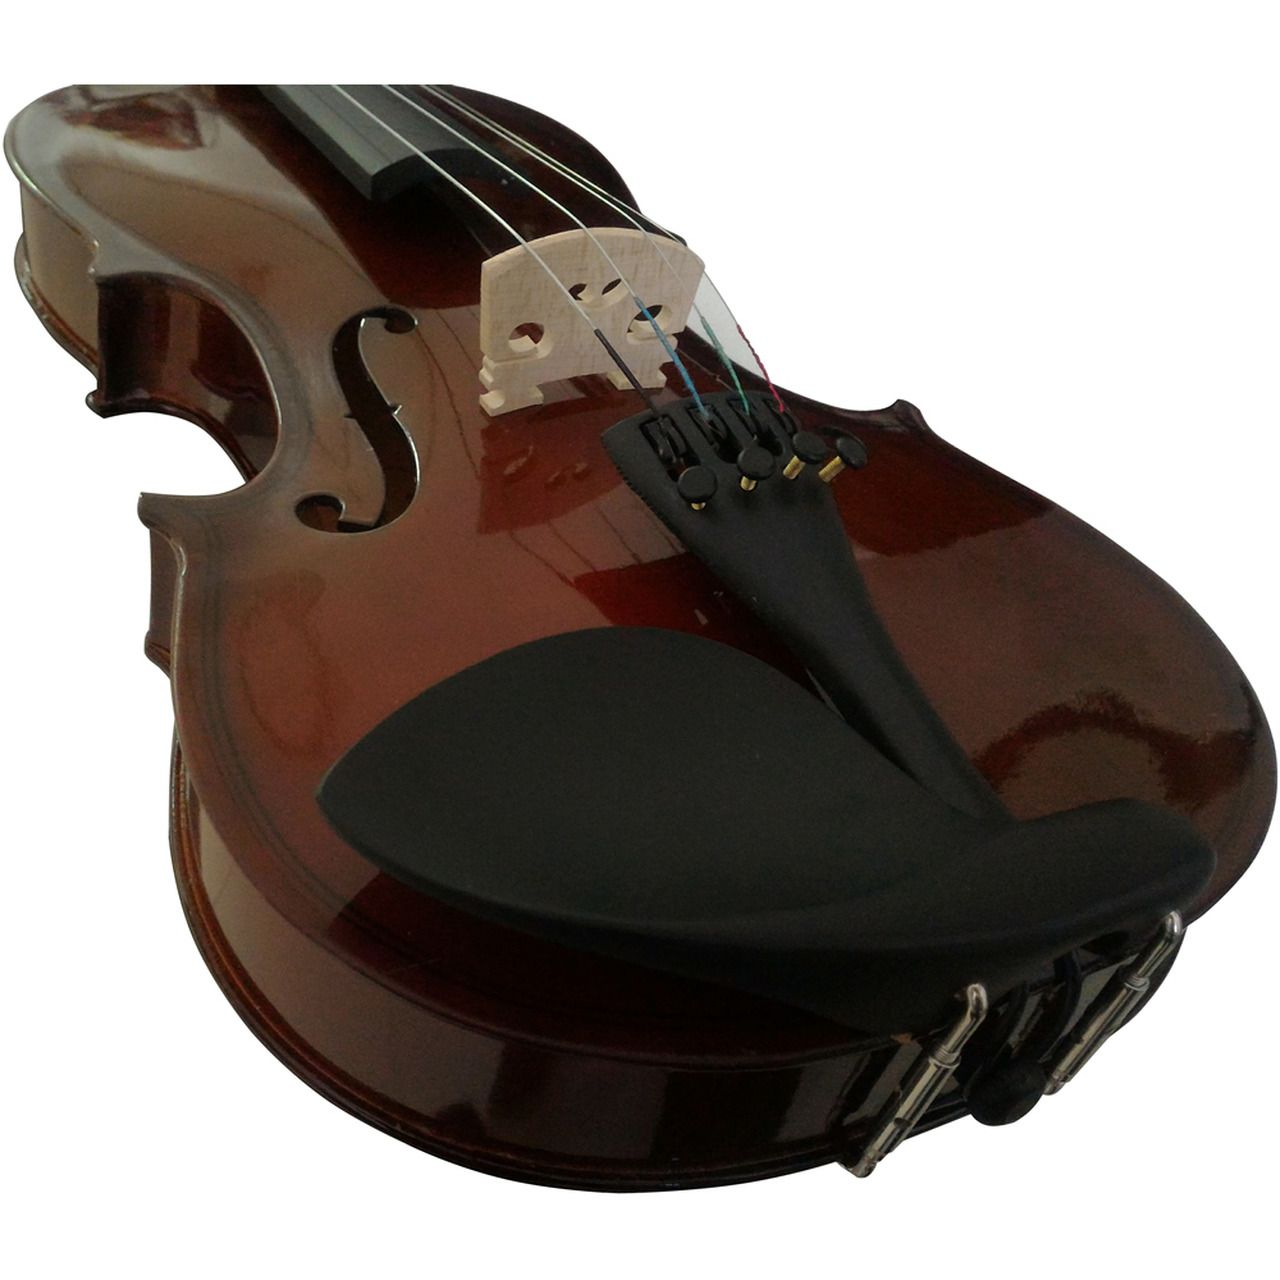 Violino MARINOS 4/4 MV-44 Germany